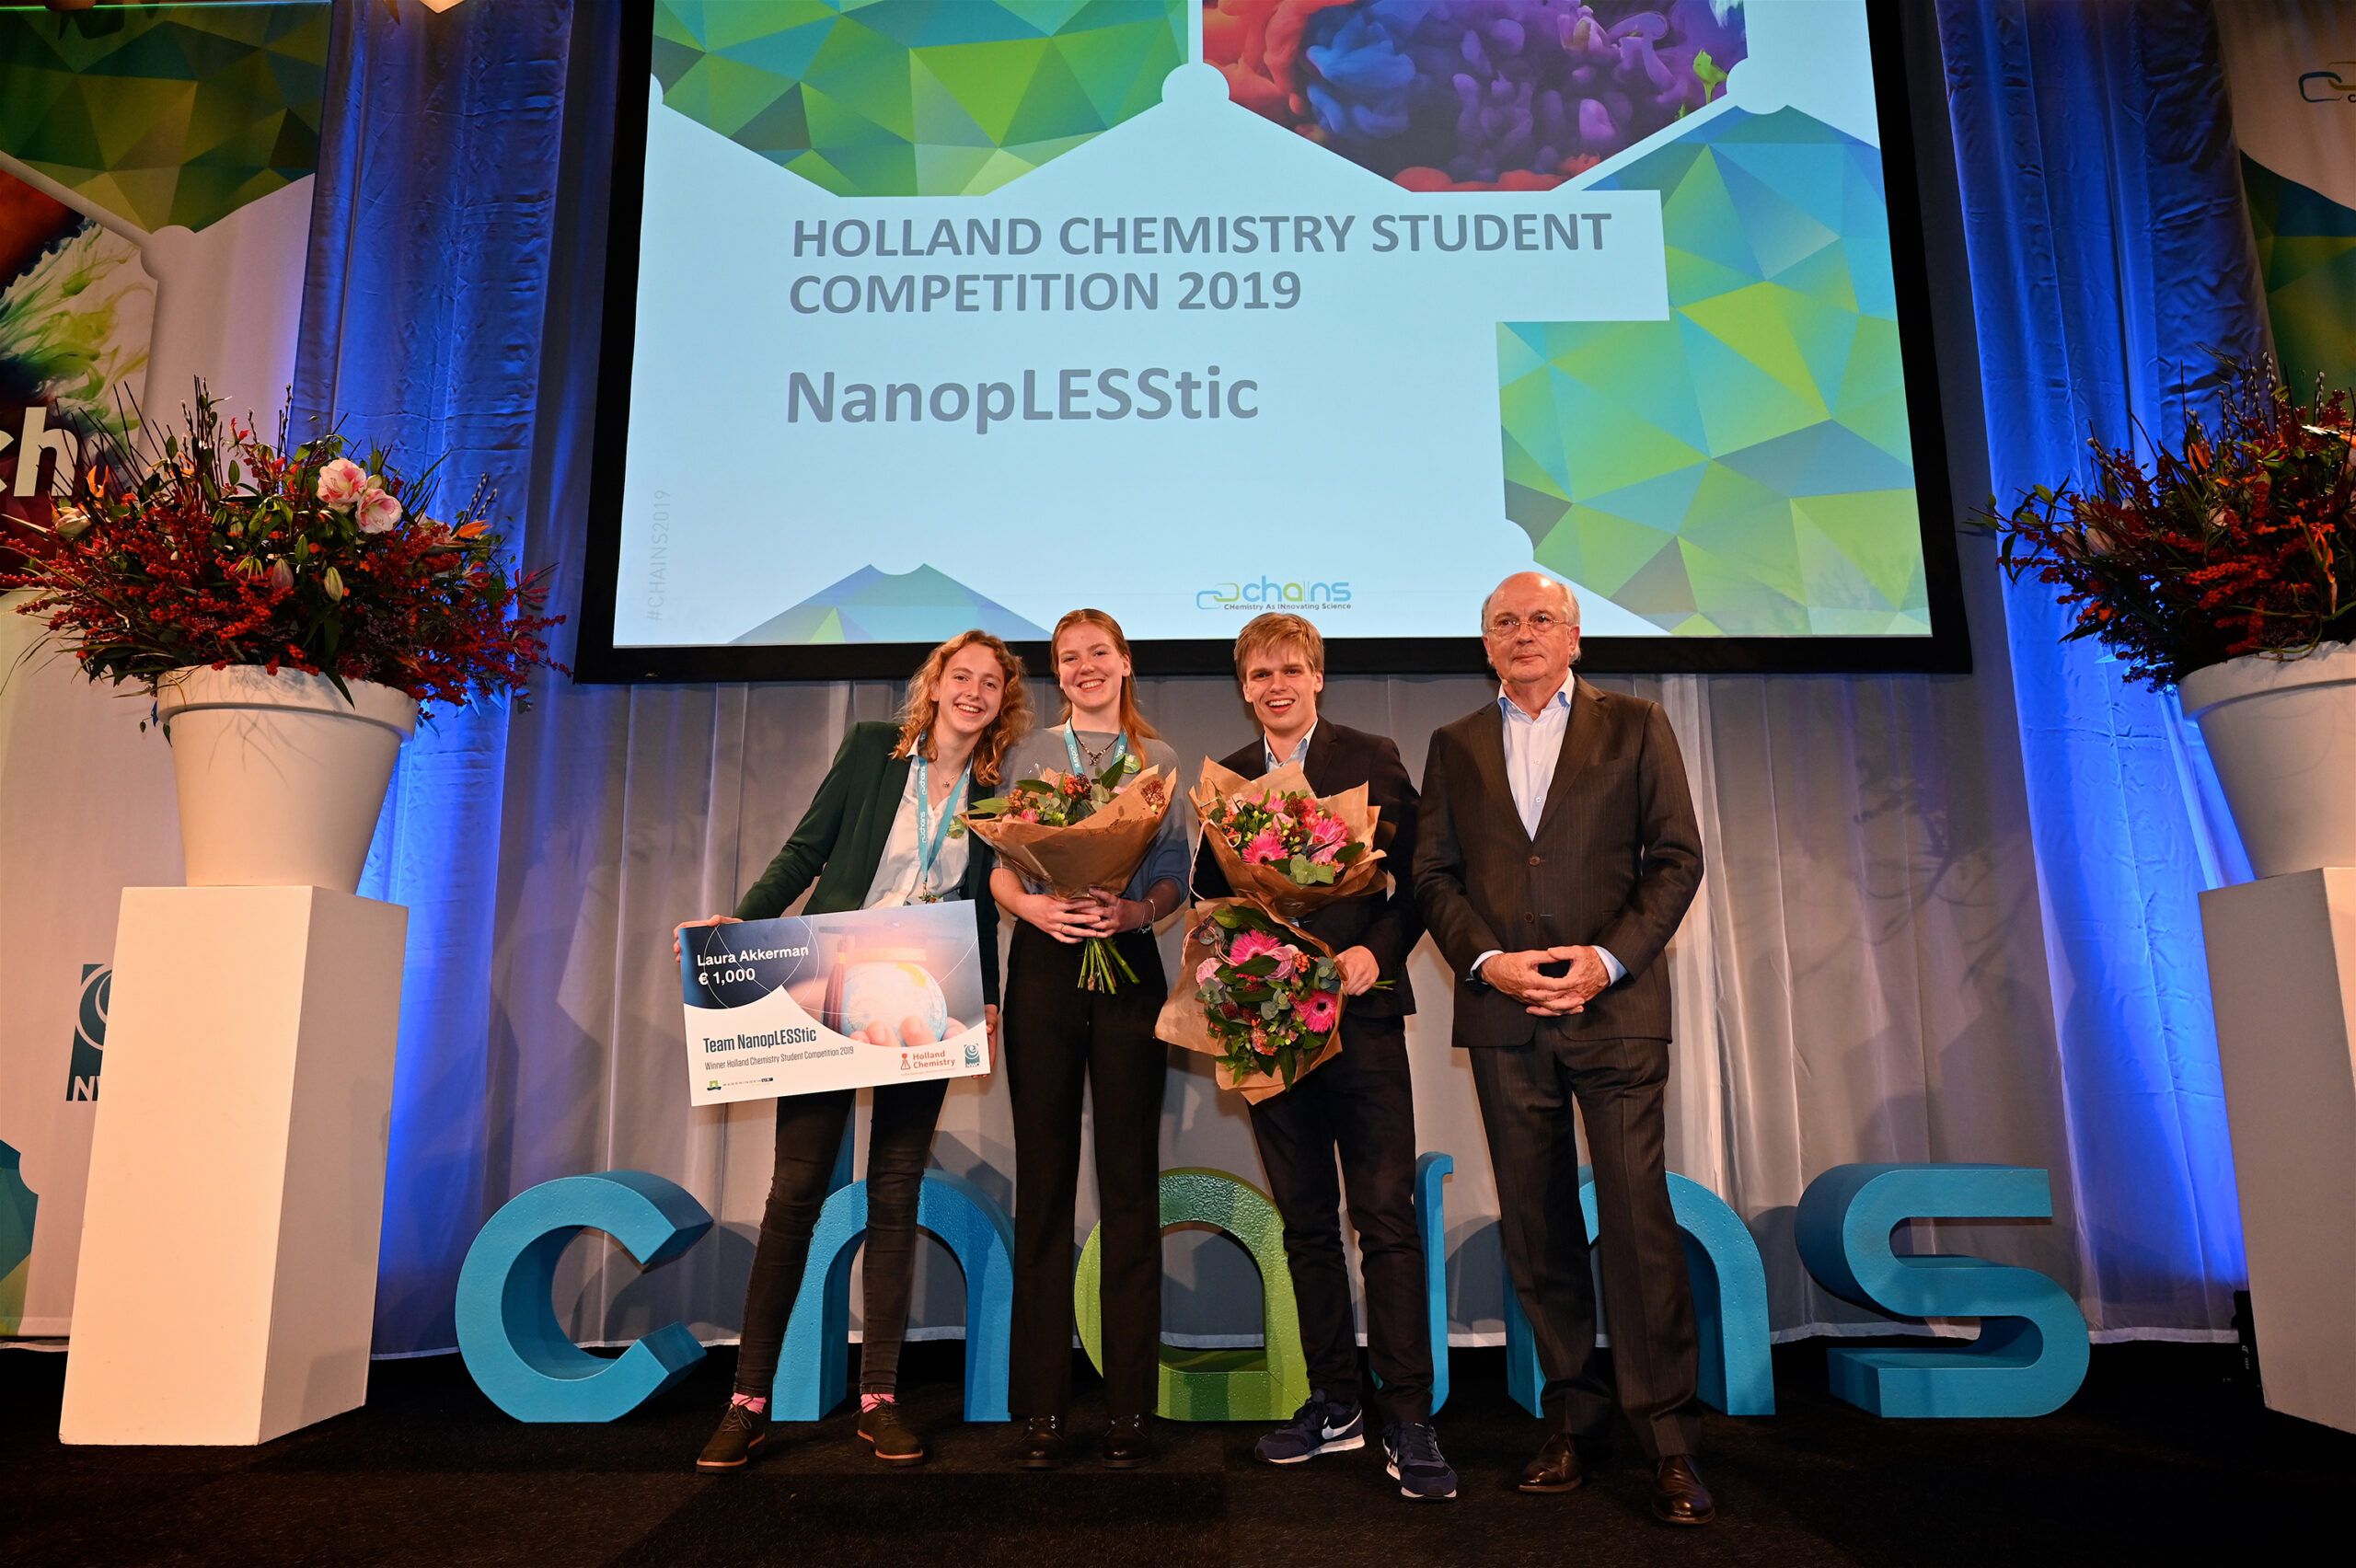 Team NanopLESStic wins Holland Chemistry Student Competition 2019